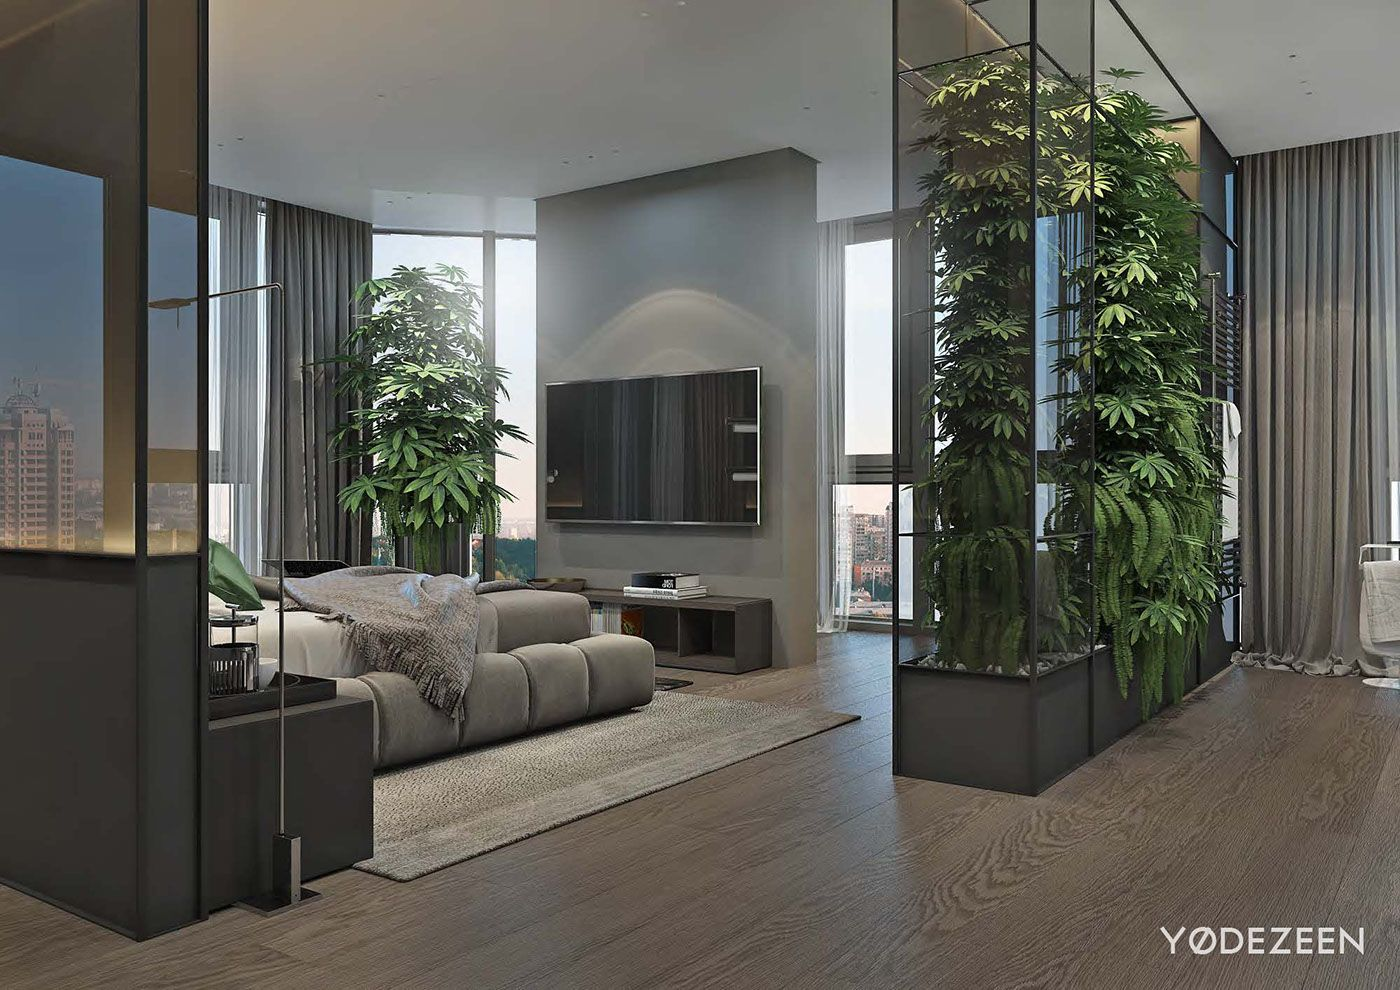 Luxurious Apartment Design Arranged By Contemporary And Organic